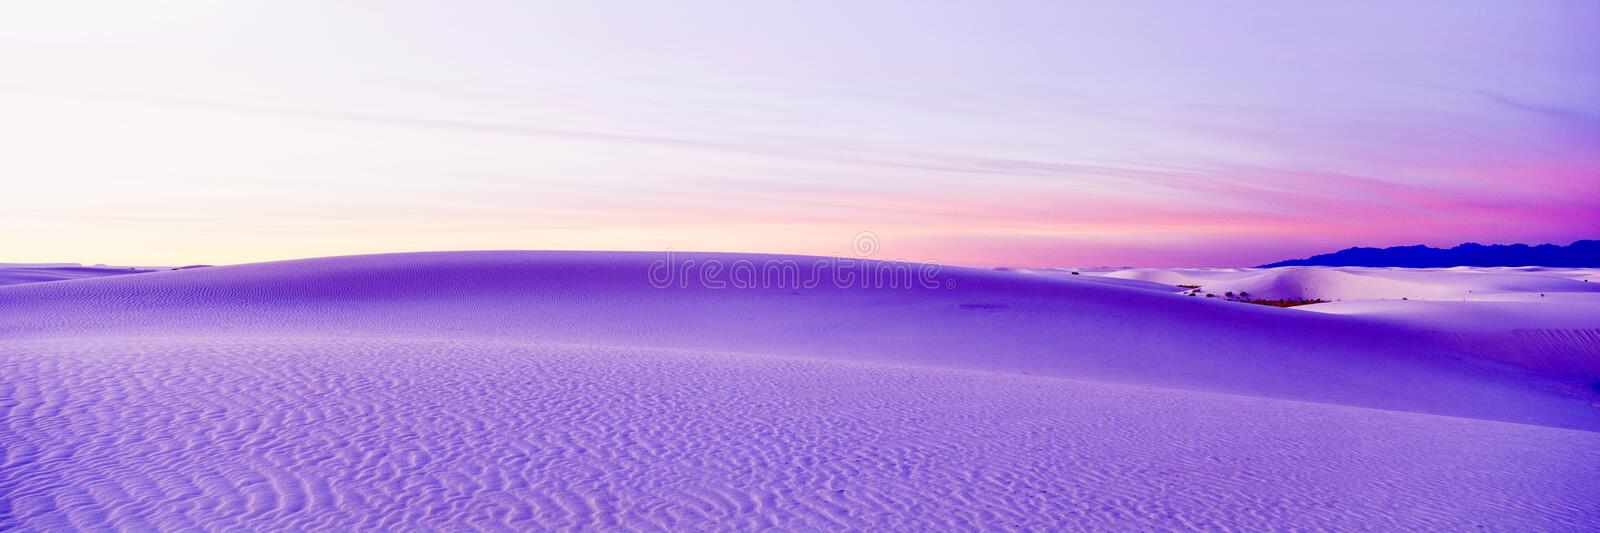 White Sands. National Monument Park royalty free stock photography